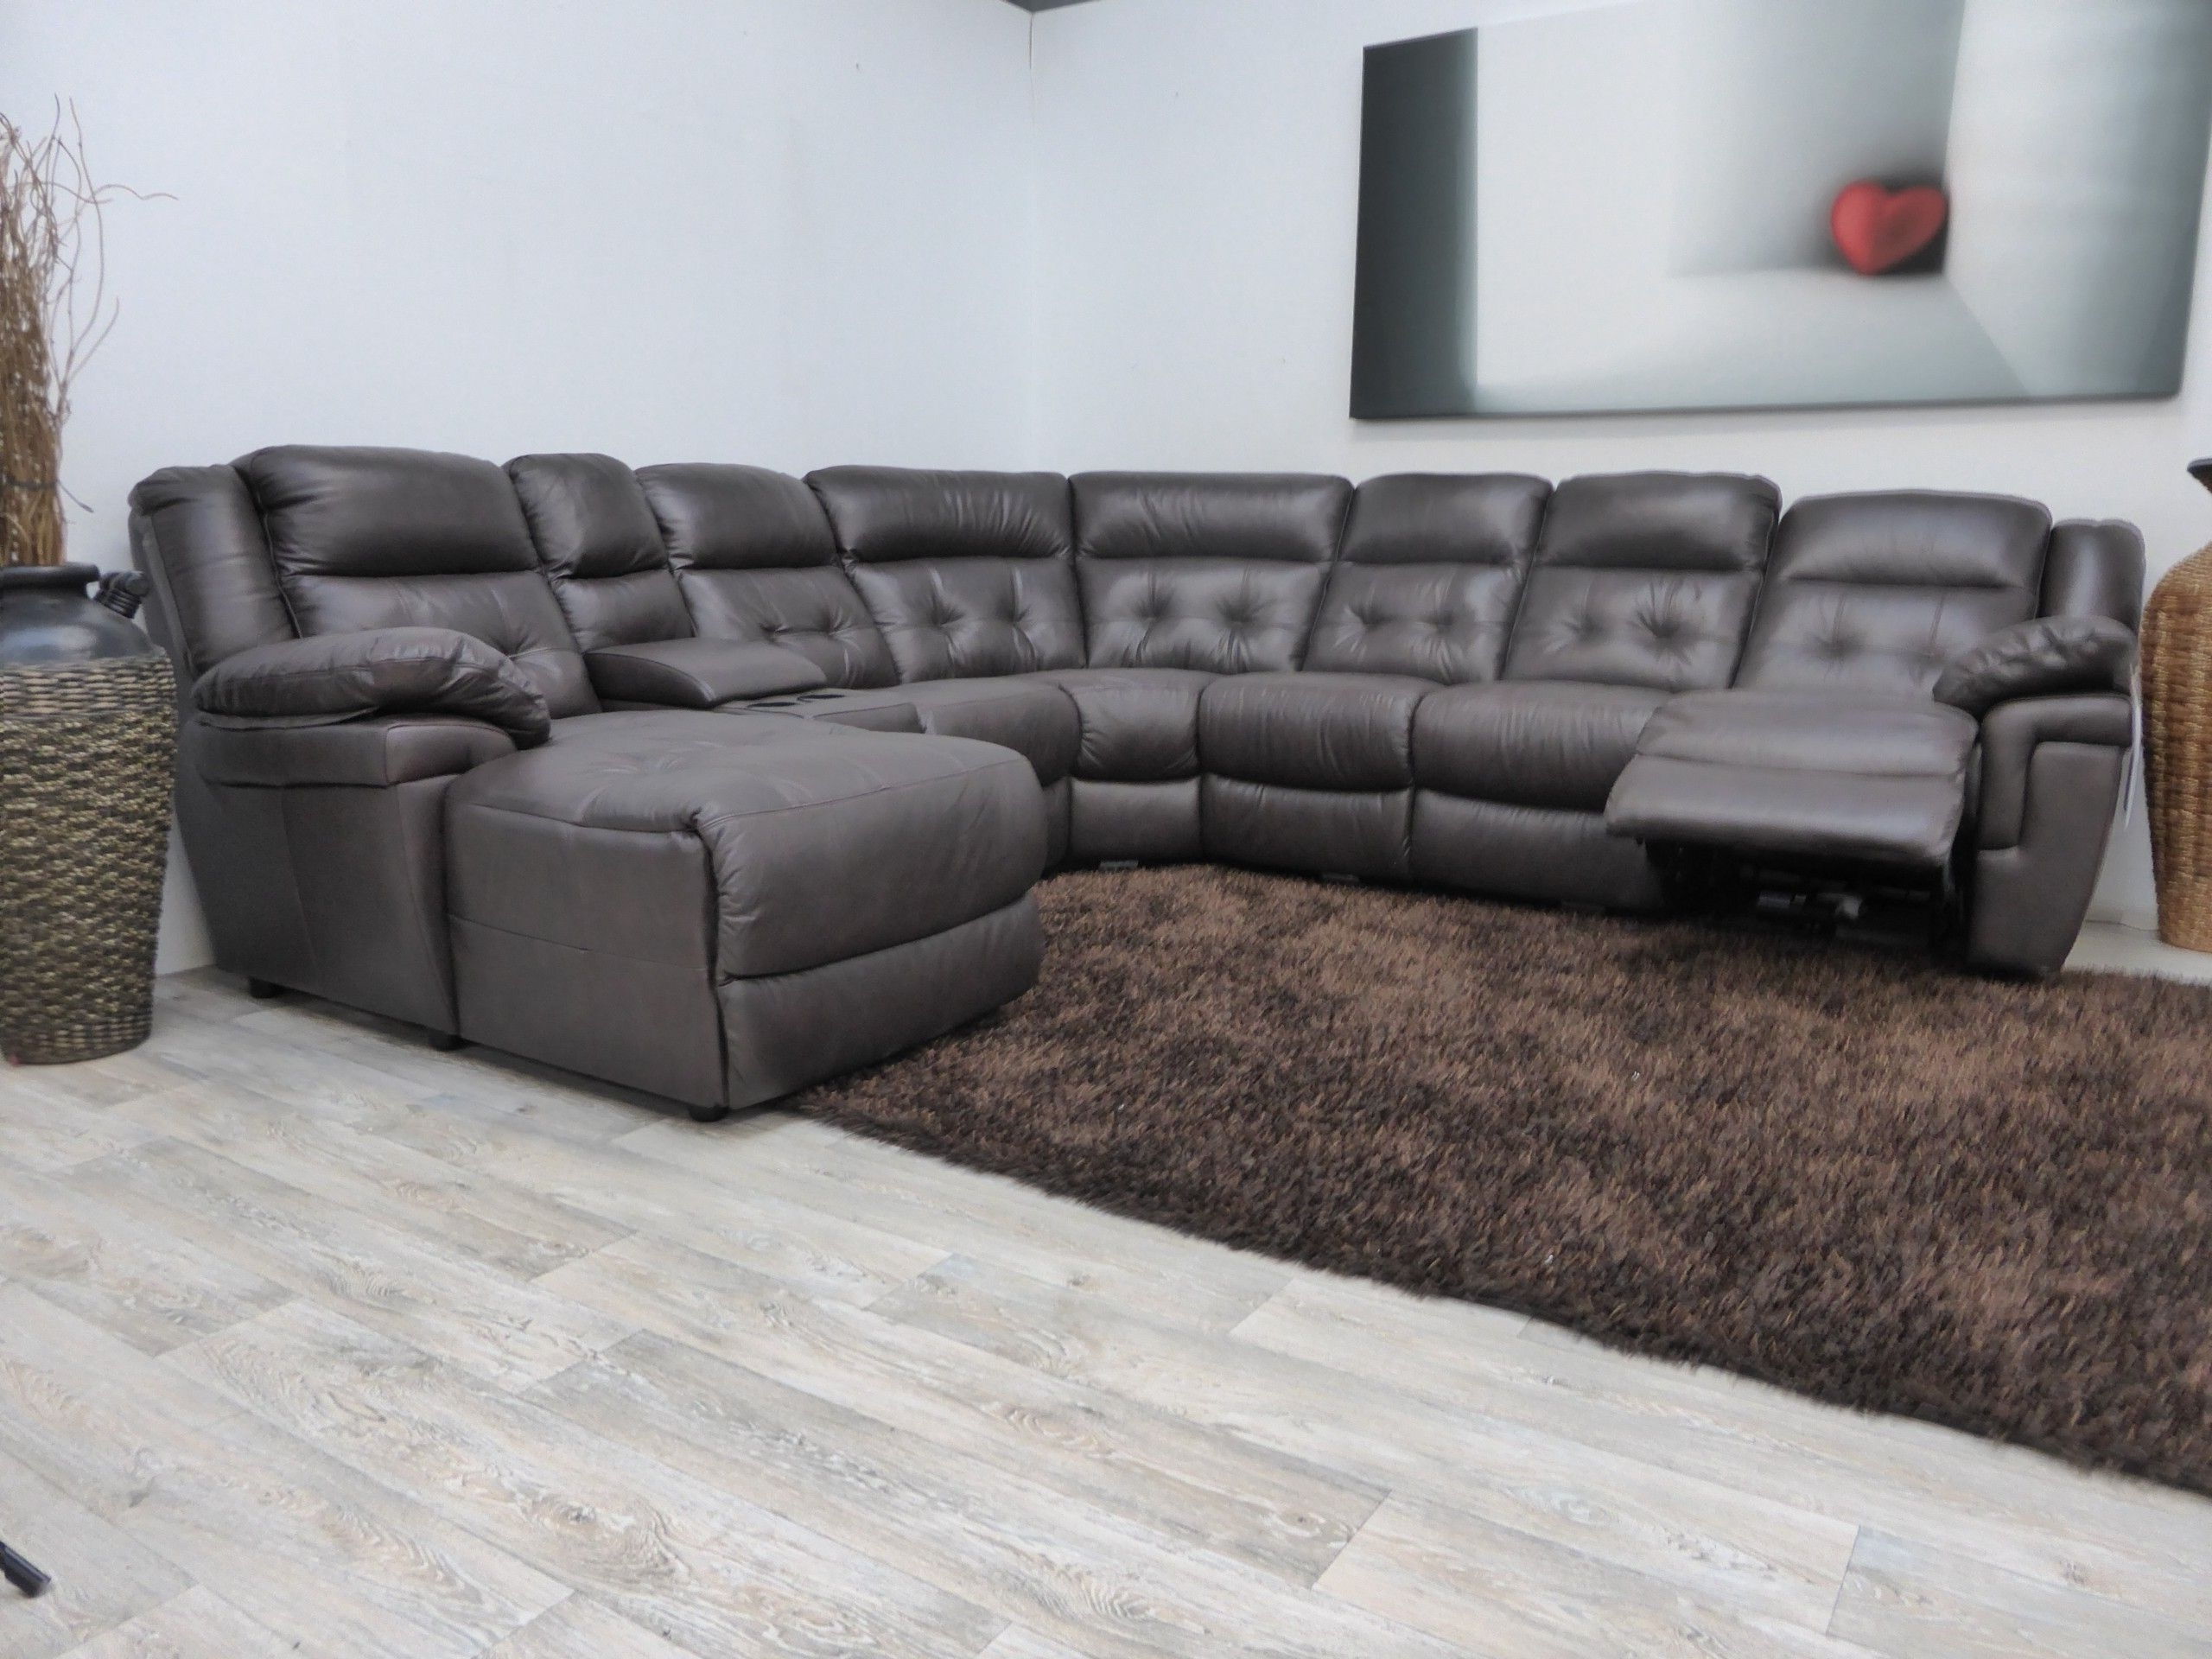 Well Liked L Shaped Sofa Design With Black Upholstery Faux Leather Sofa Pertaining To Queens Ny Sectional Sofas (View 15 of 15)